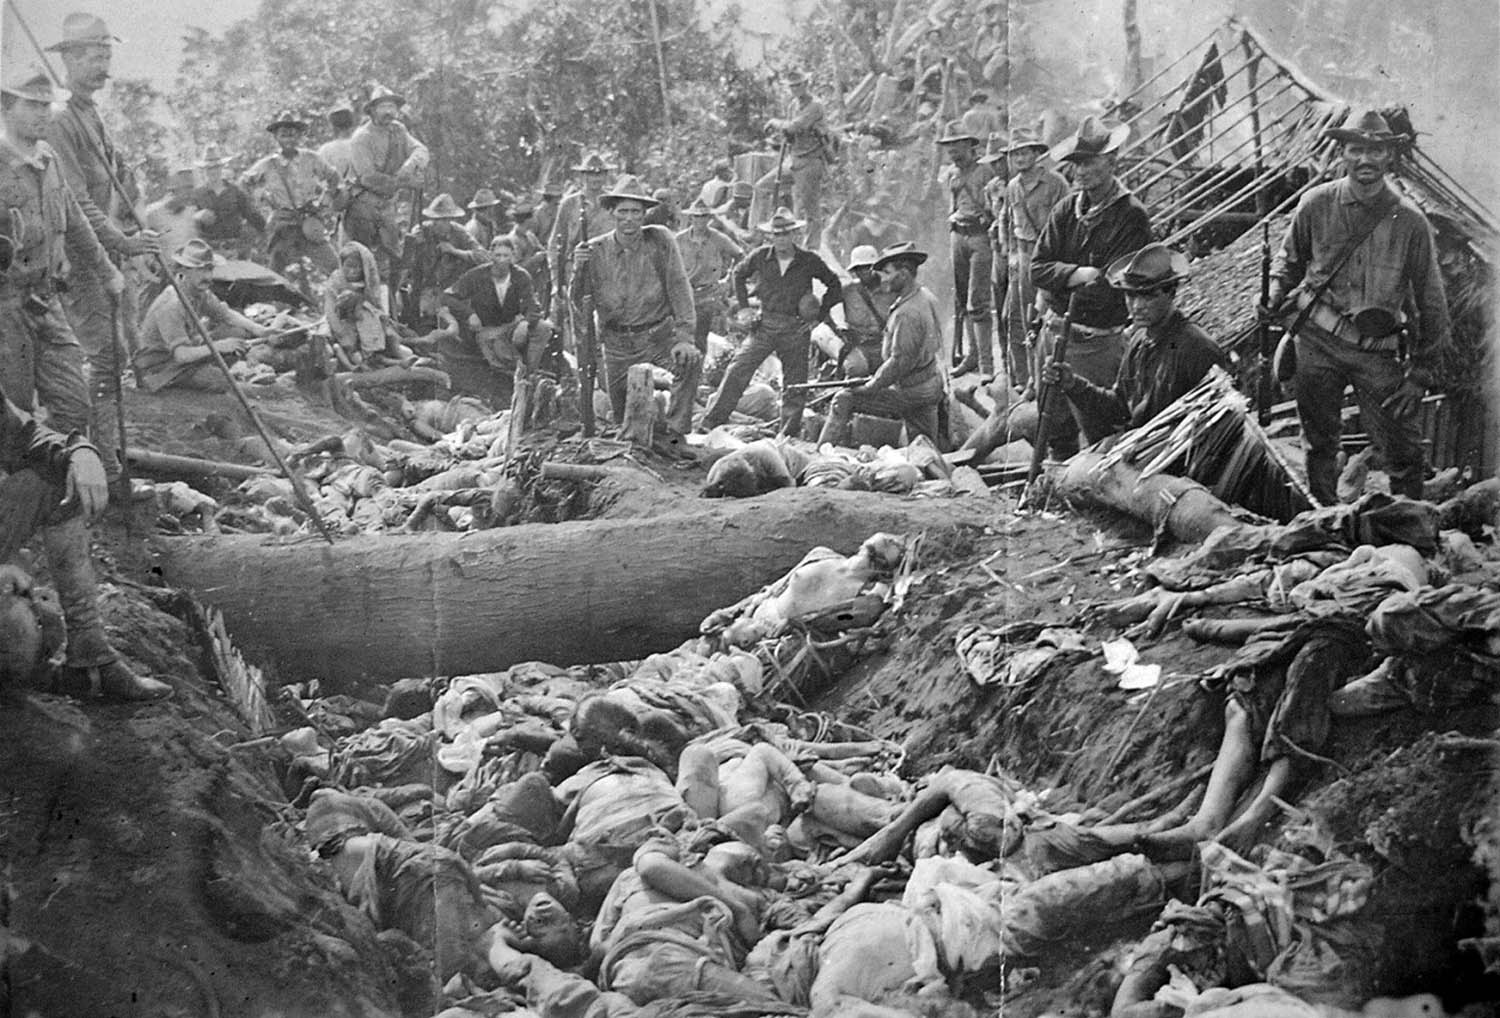 The bodies of Moro insurgents killed by US troops during the Battle of Bud Dajo in the Philippines, March 7, 1906.